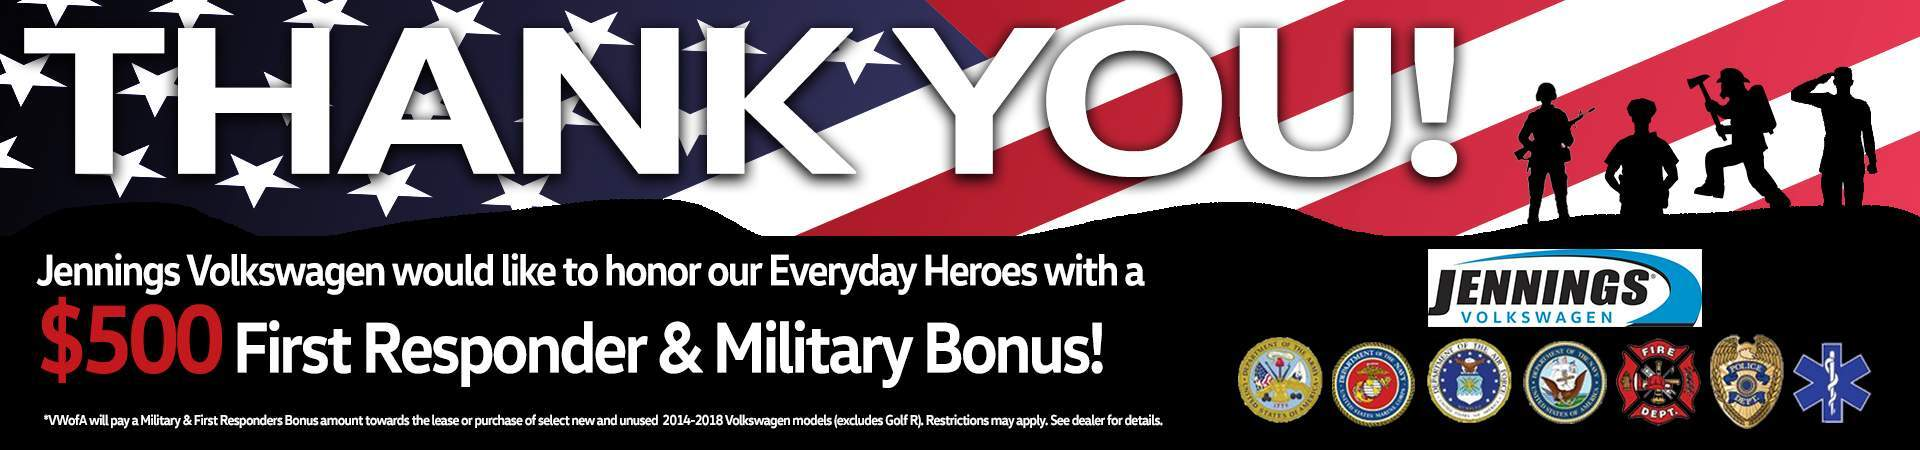 Military and First Responder Bonus